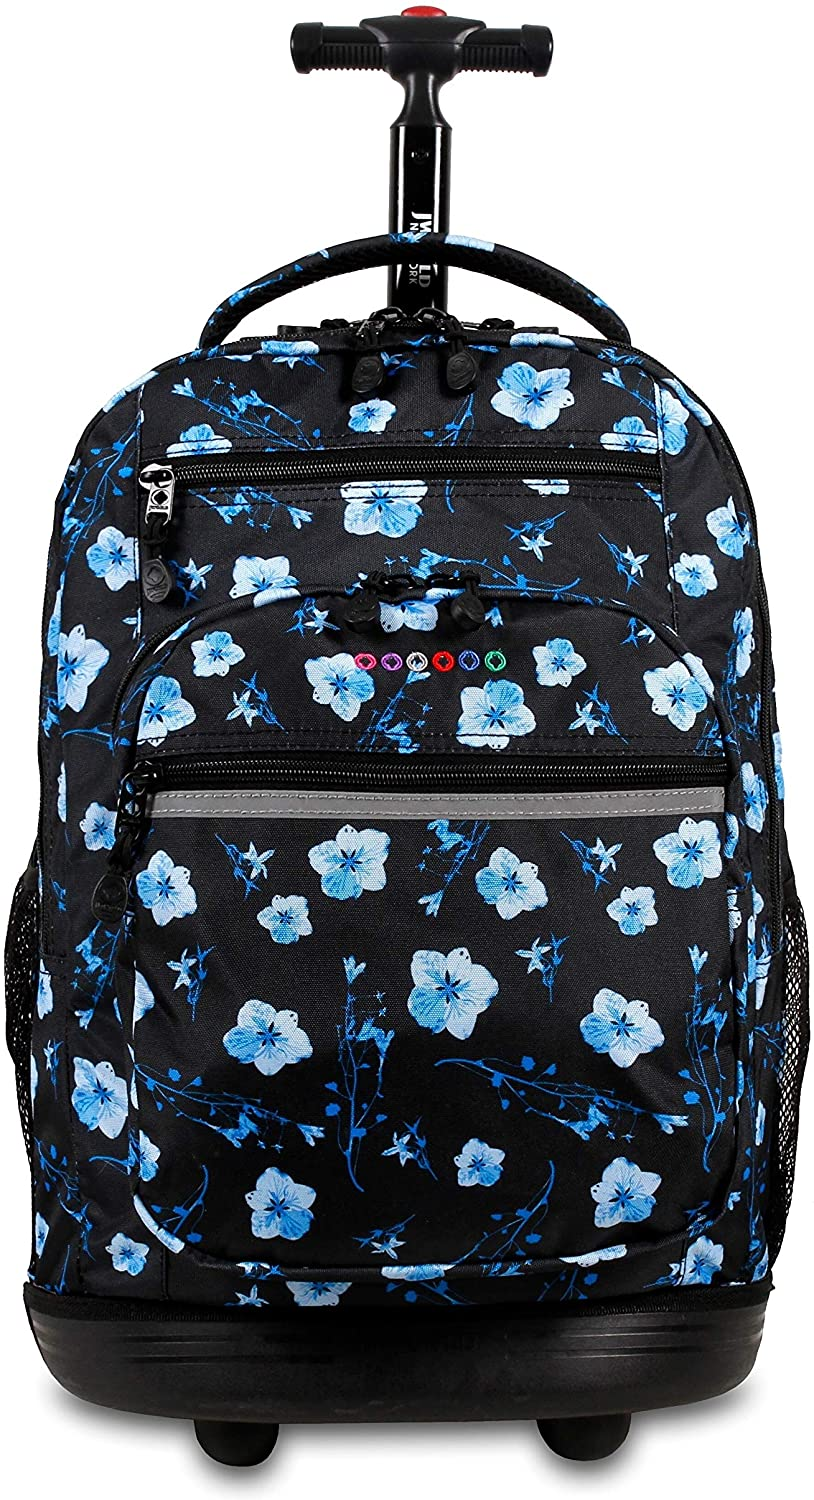 New York Sundance 20 inch Laptop Rolling Backpack Fits Up 16 inch Black Floral Polyester Compartment Adjustable Strap